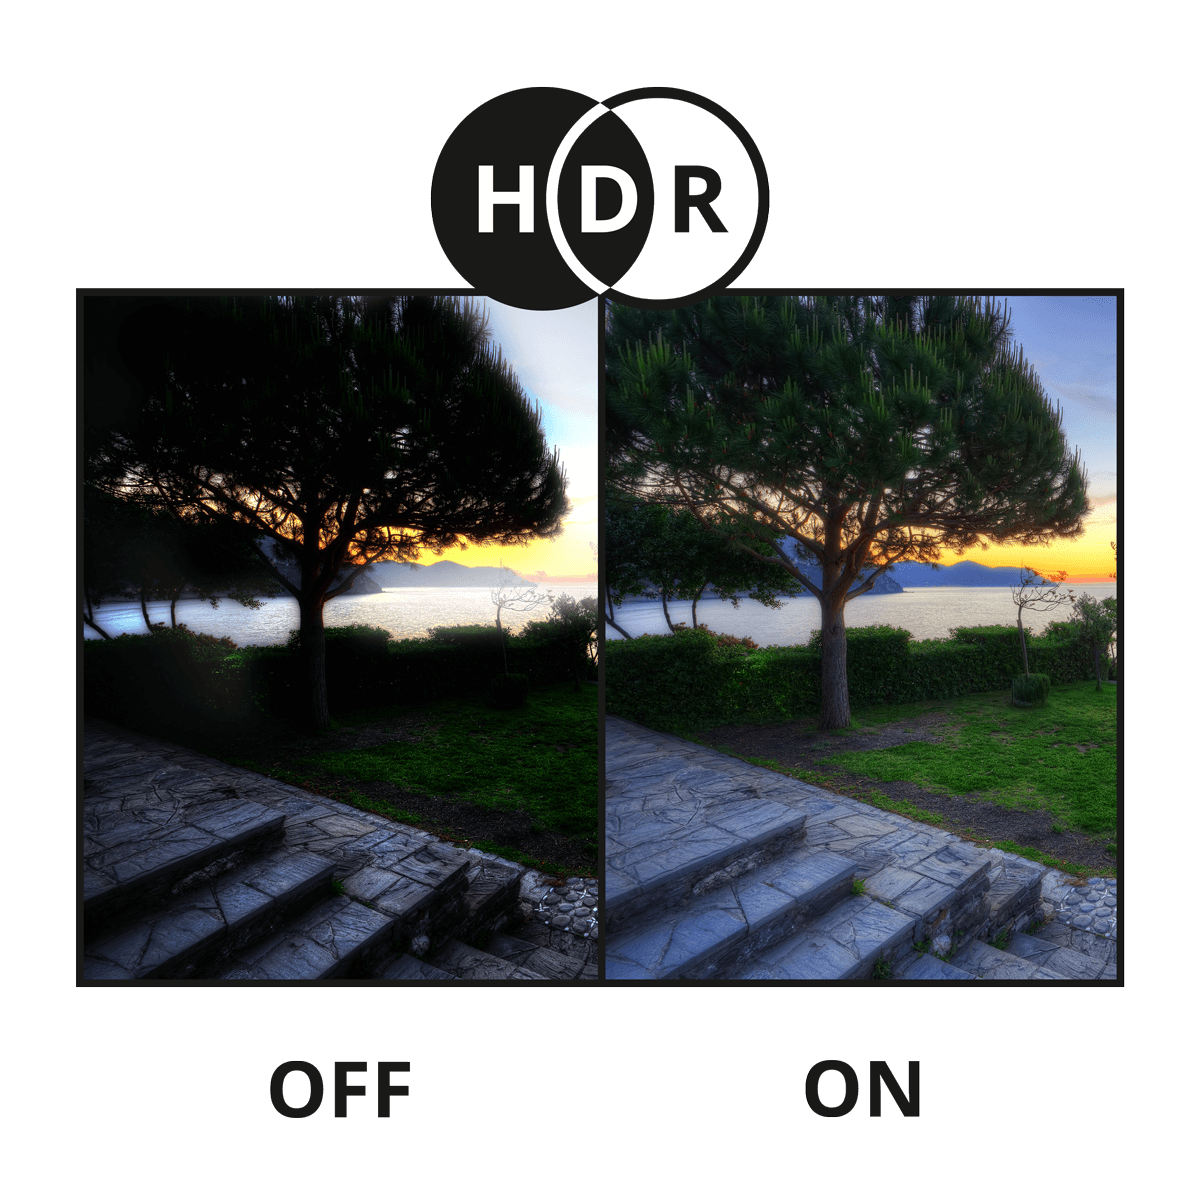 HDR nocturnal security camera